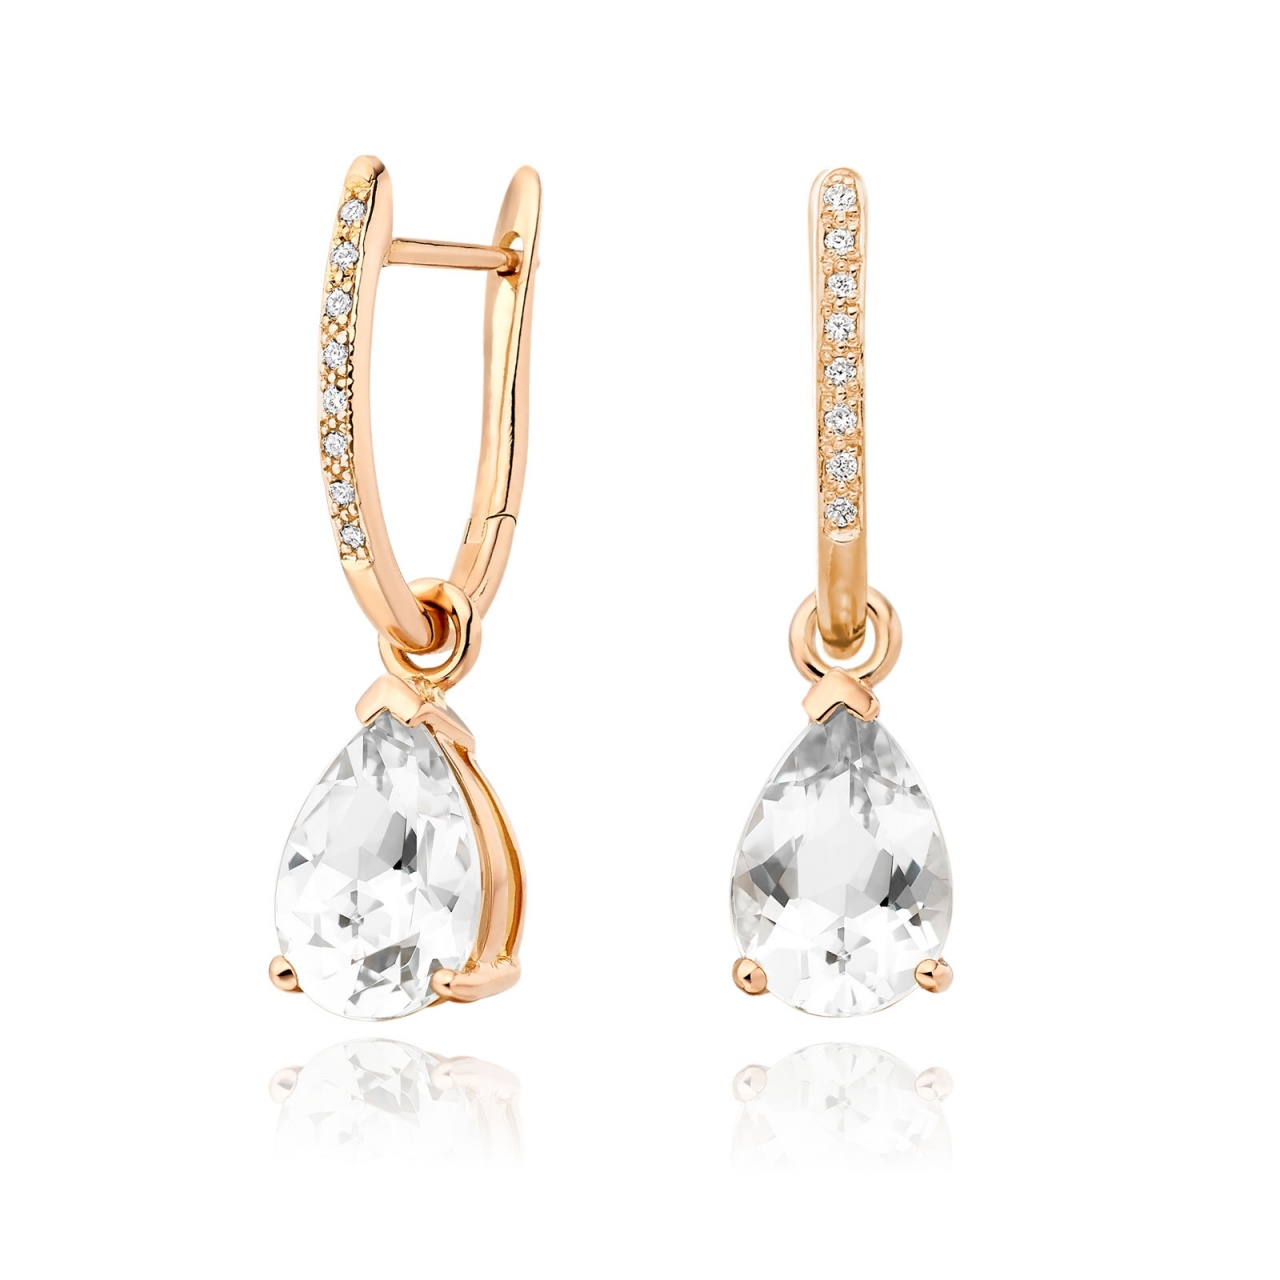 Rose Gold Diamond Leverbacks with Mythologie White Topaz Drops-EAWTRG1278-1